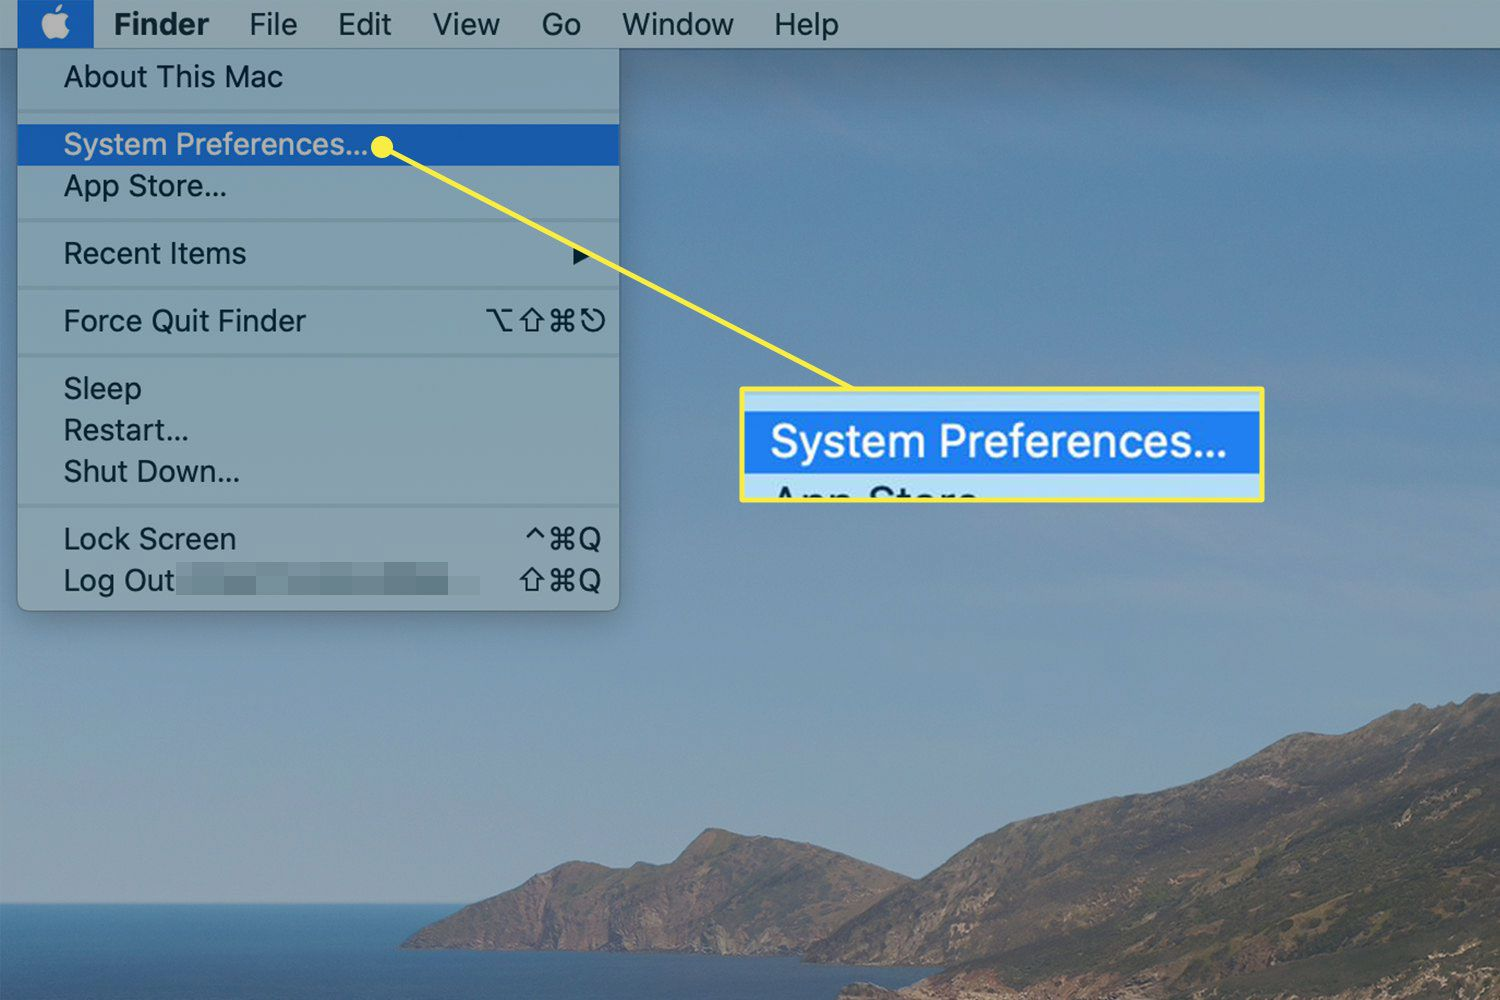 The Apple Menu on a Mac with the System Preferences command highlighted